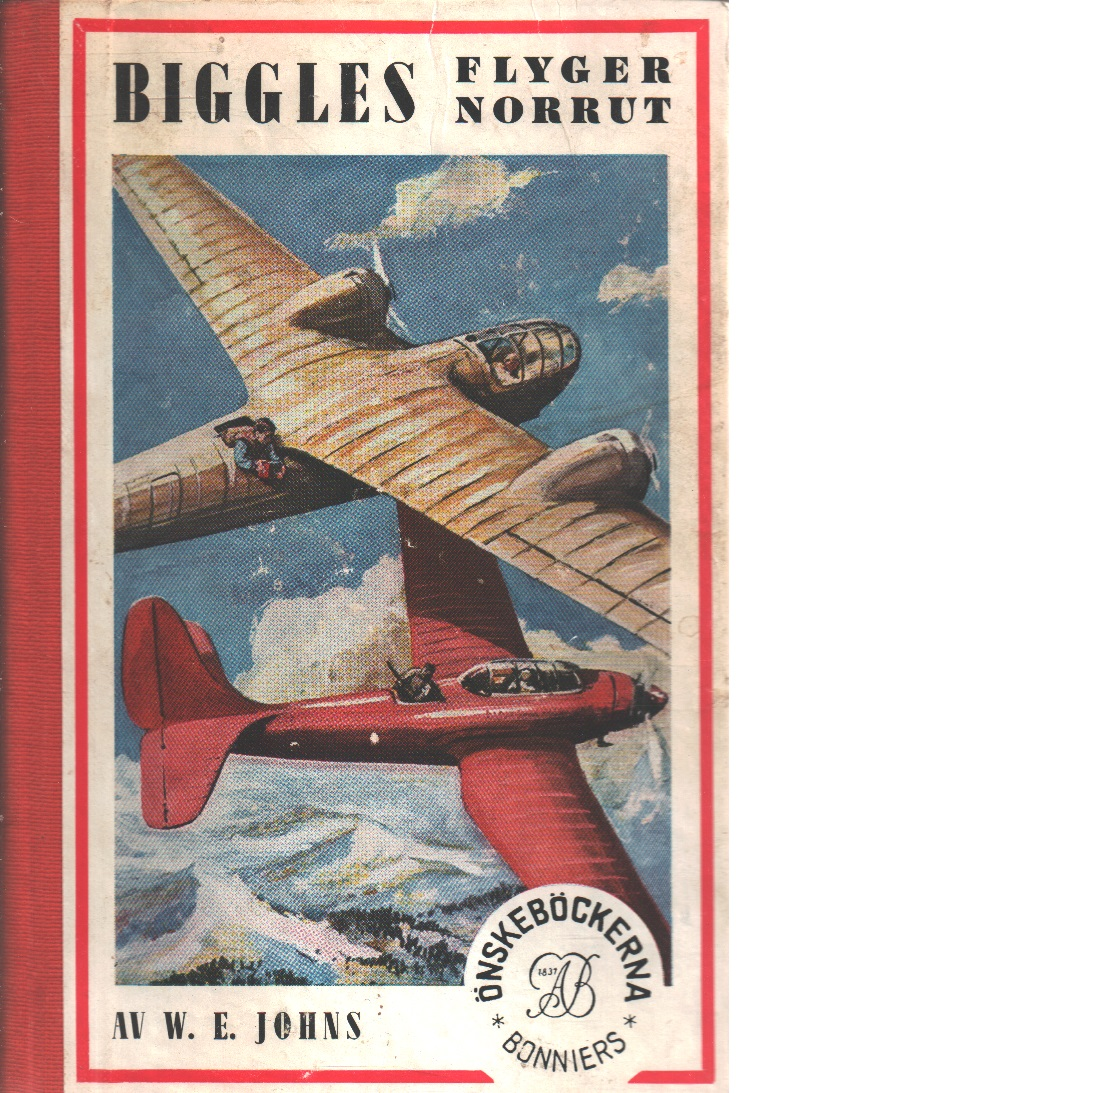 Biggles flyger norrut - Johns, William Earl